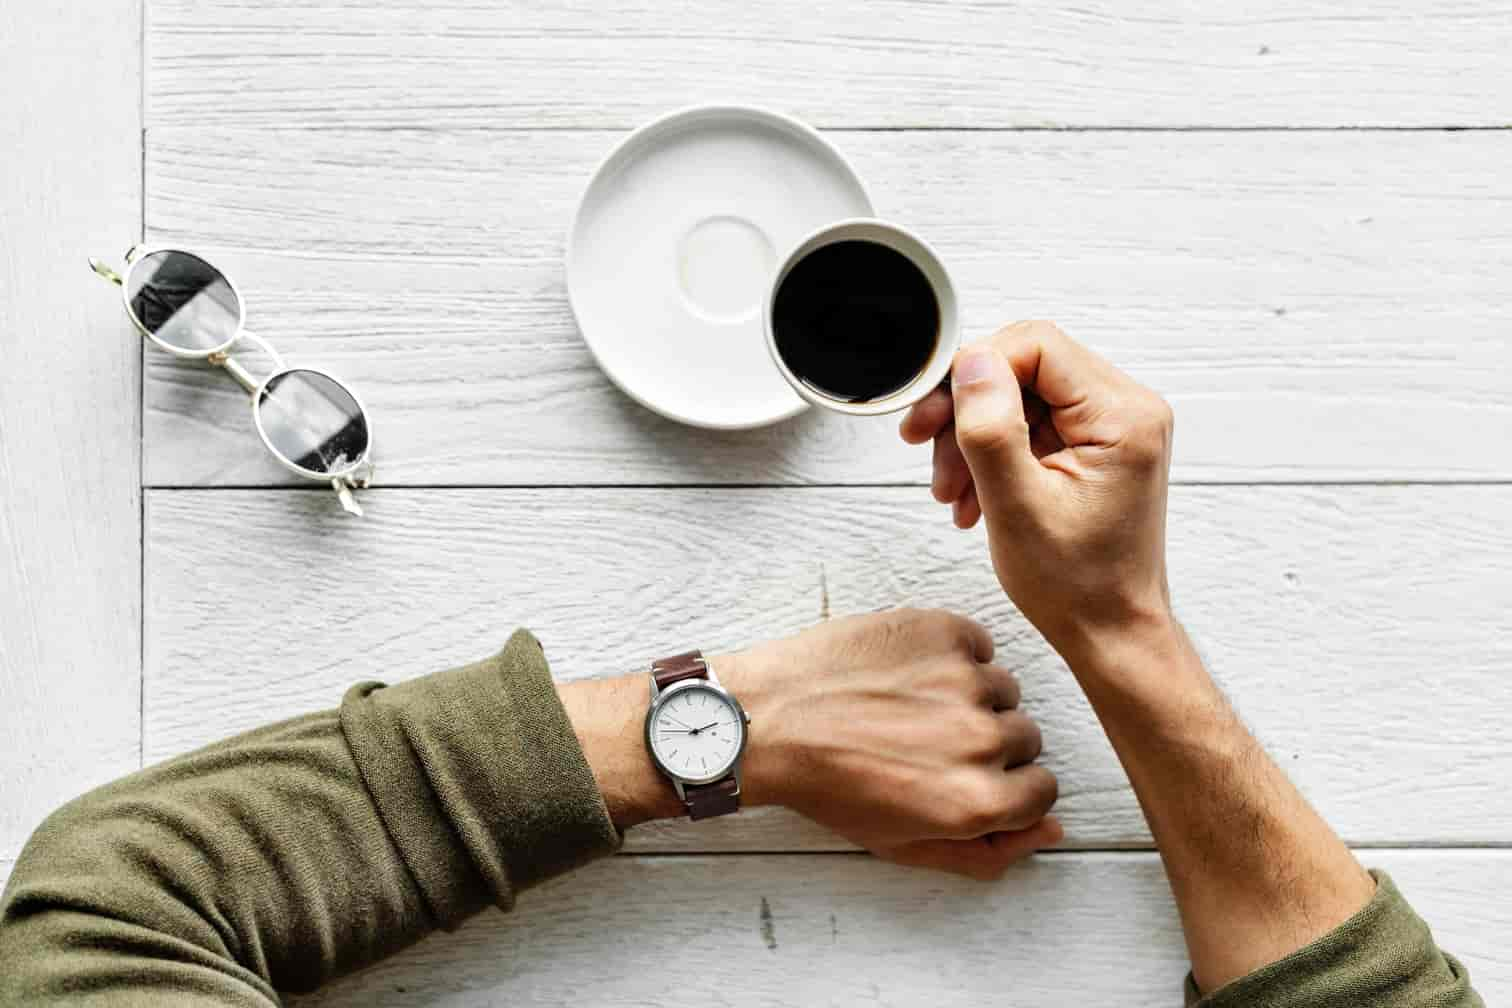 Man holding a cup of coffee and looking at his watch.